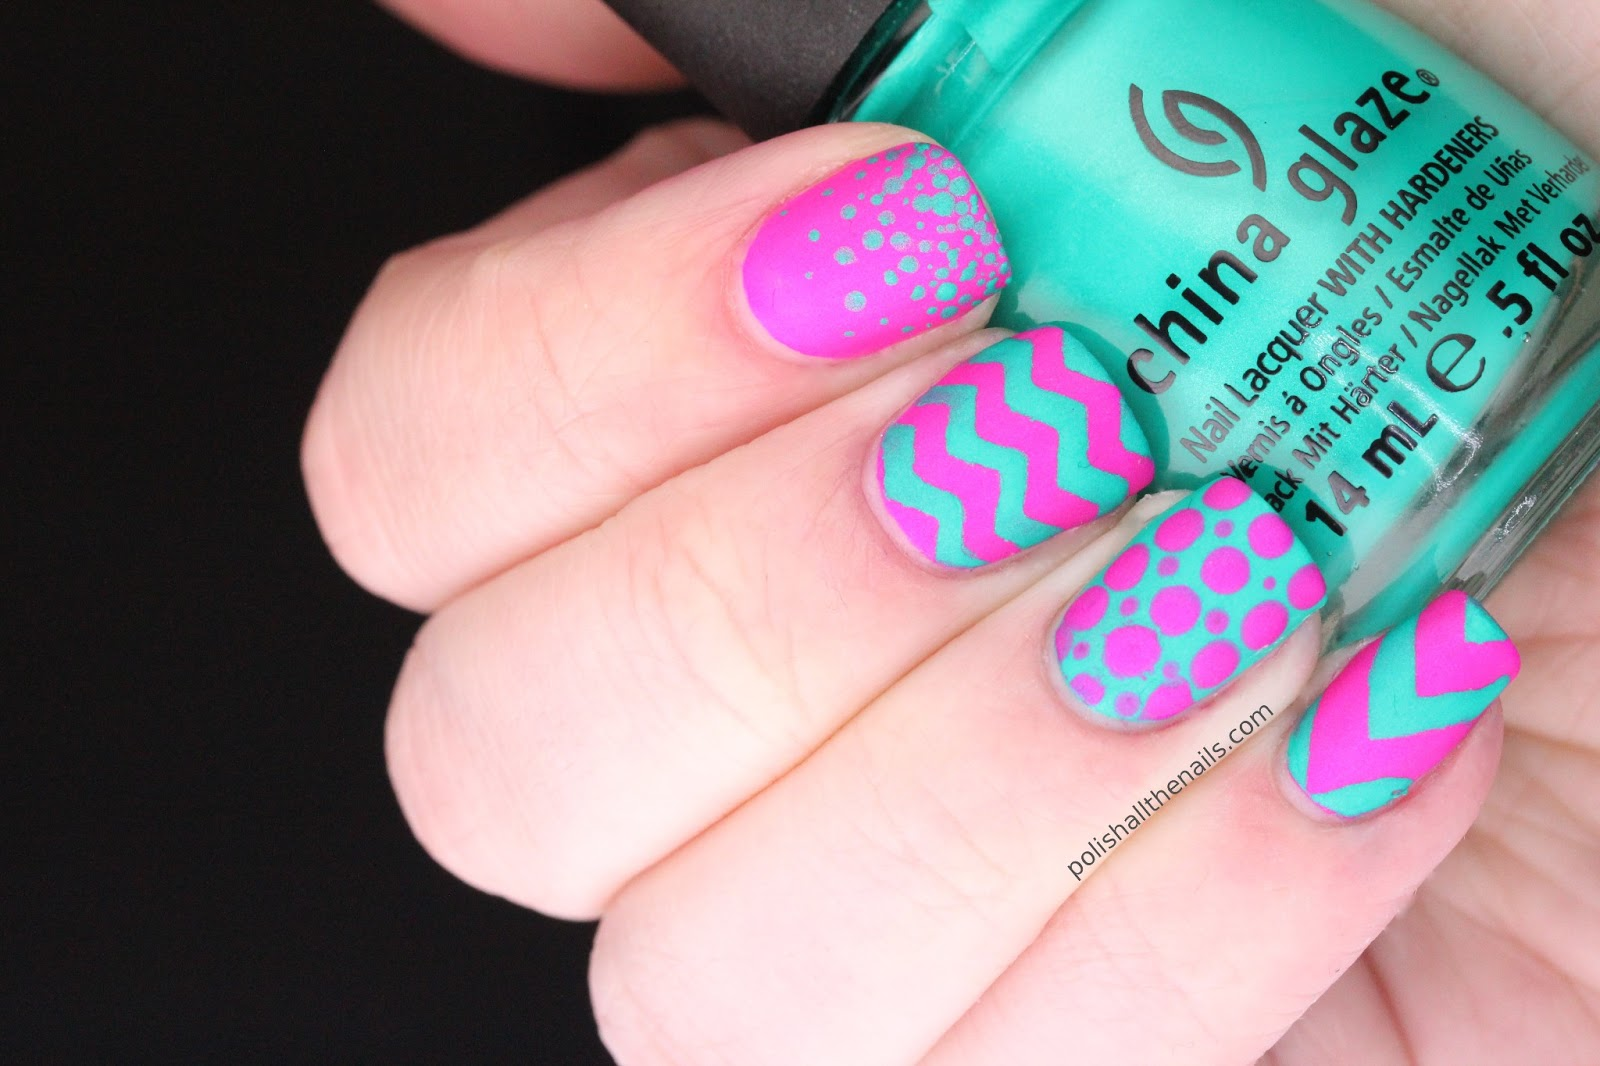 71 images about uñas on We Heart It | See more about nails, nail art ...